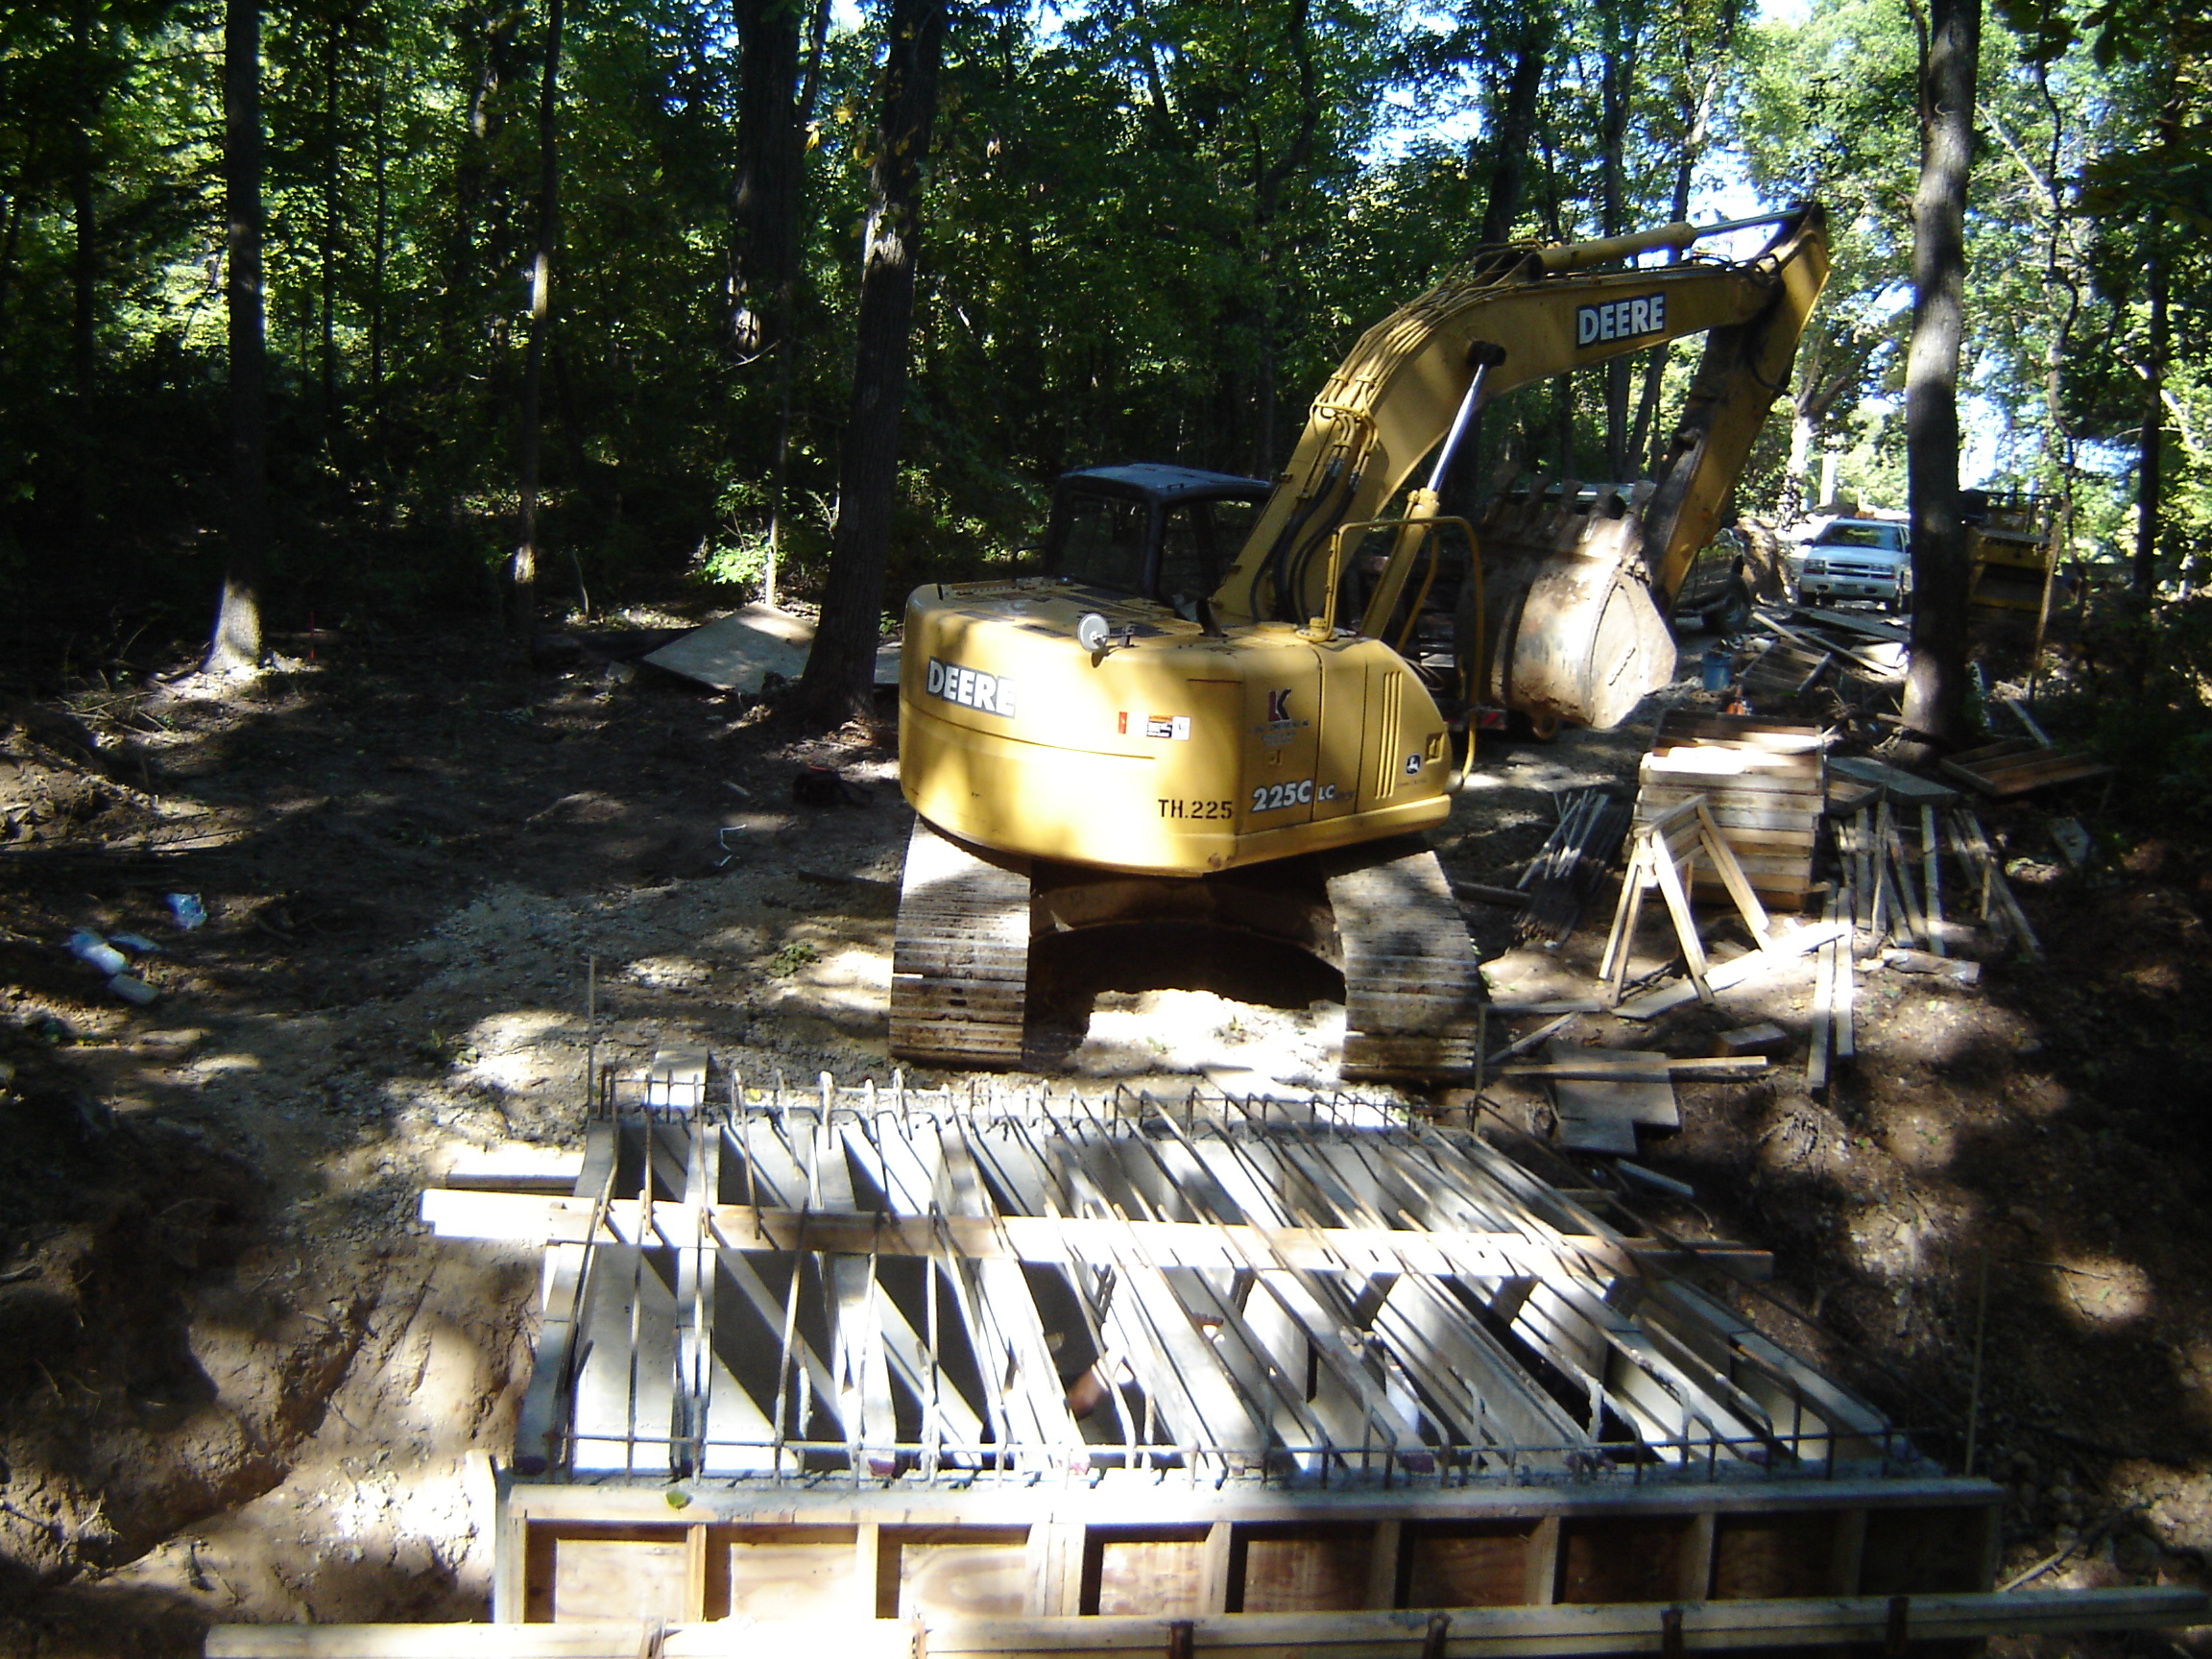 Wildwood Greenway Under Construction